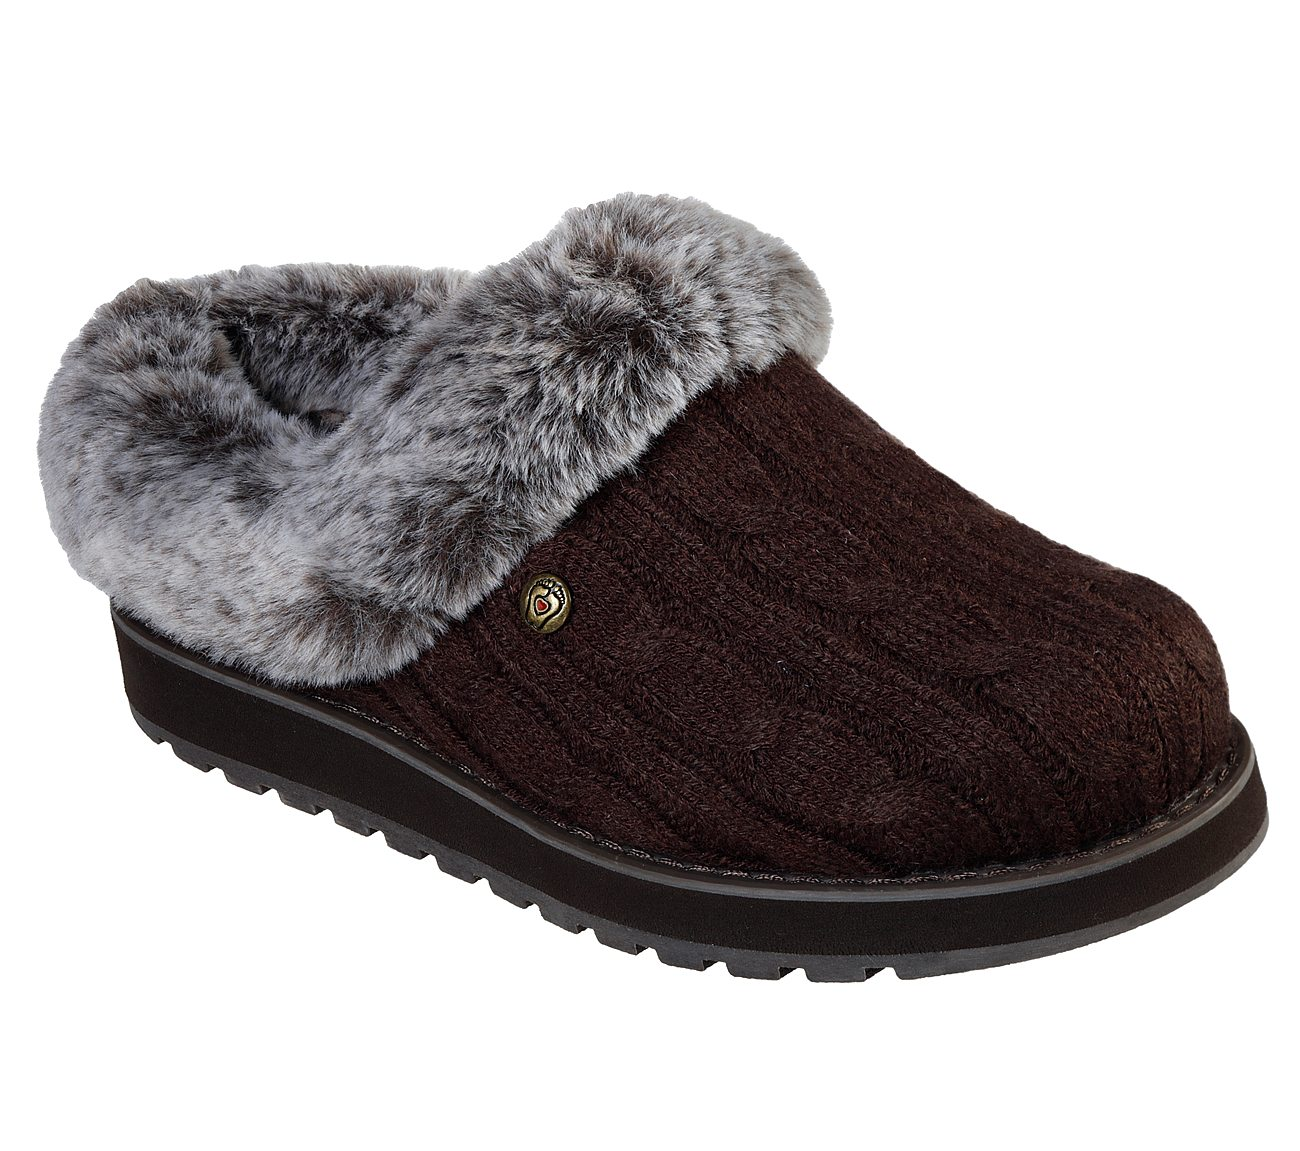 Skechers SK31204 Braun Bobs Keepsakes Ice Storm chocolate Braun SK31204 ladies mule slipper c0918d